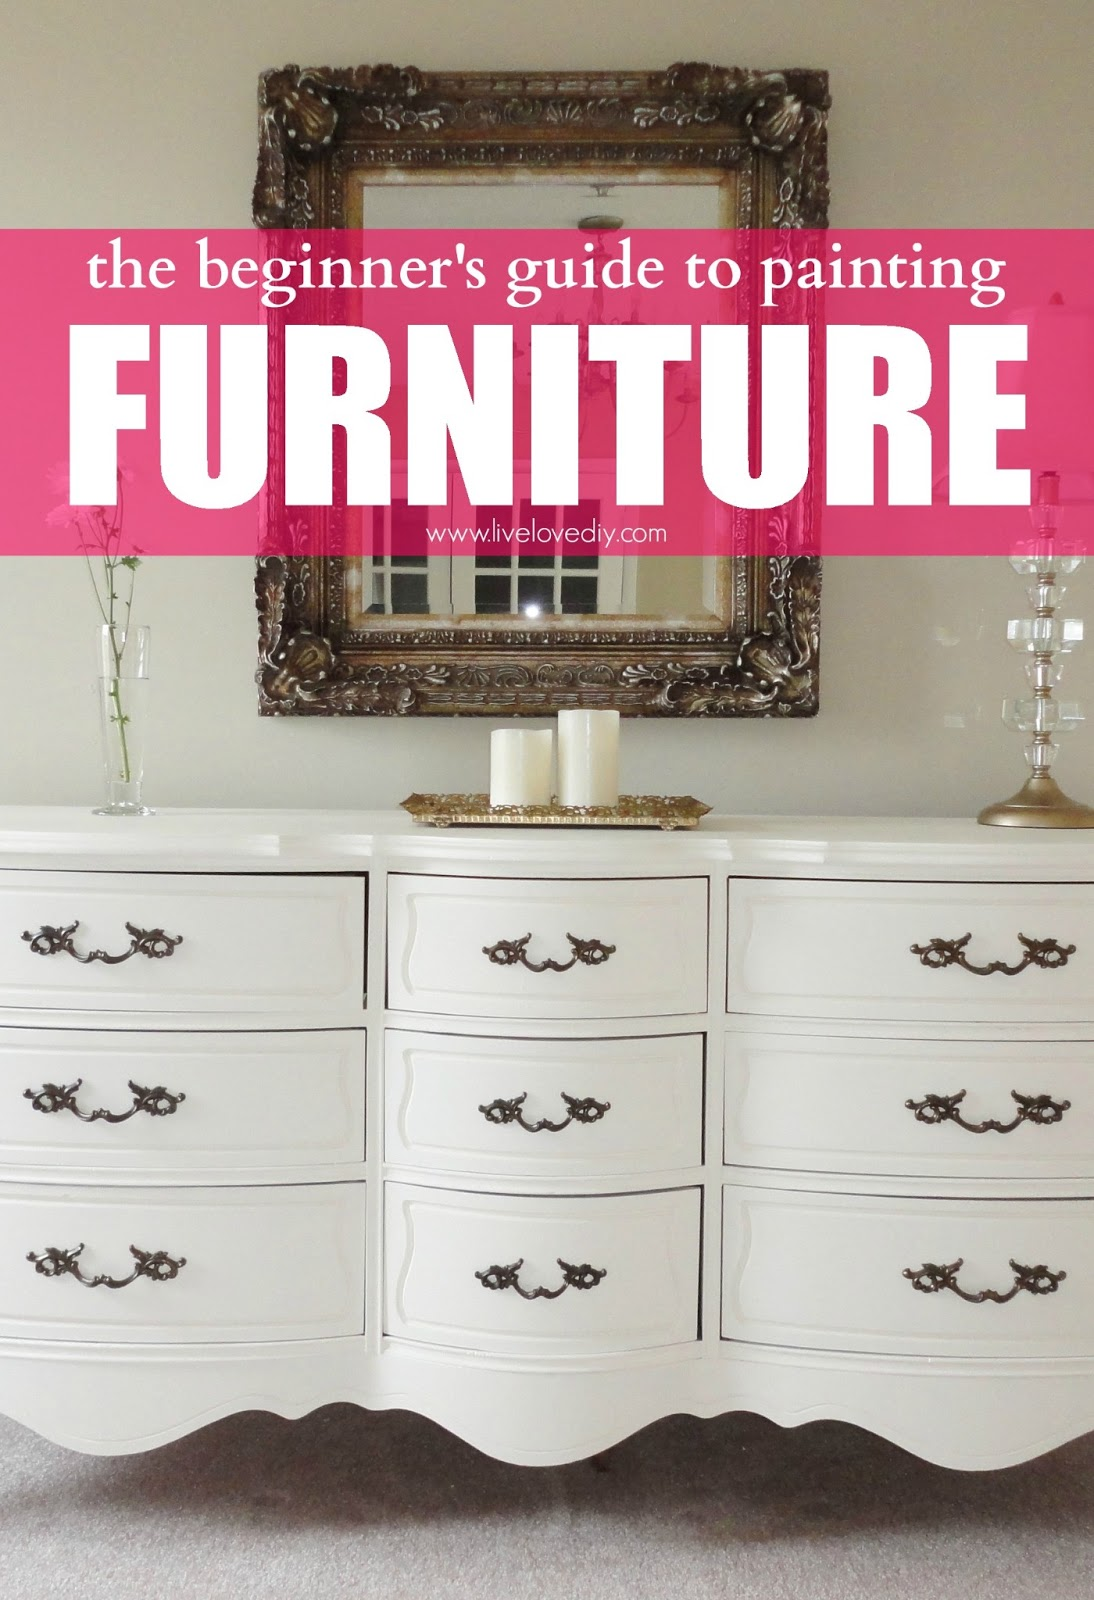 LiveLoveDIY: The Beginner's Guide to Painting Furniture